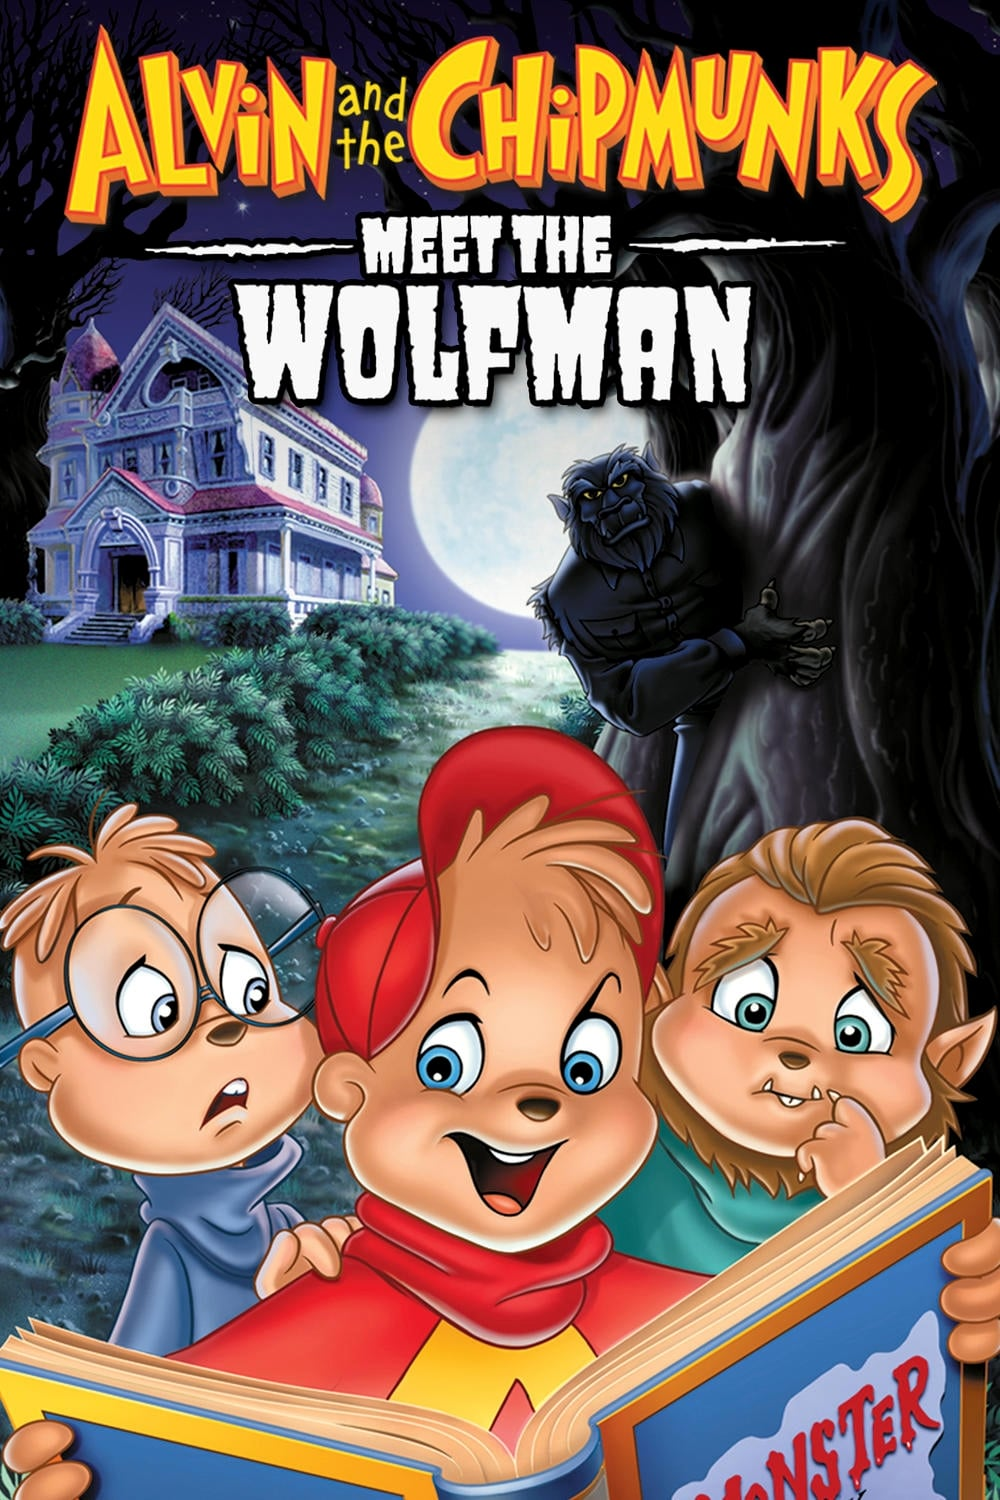 chipmunks meet the wolfman part 1